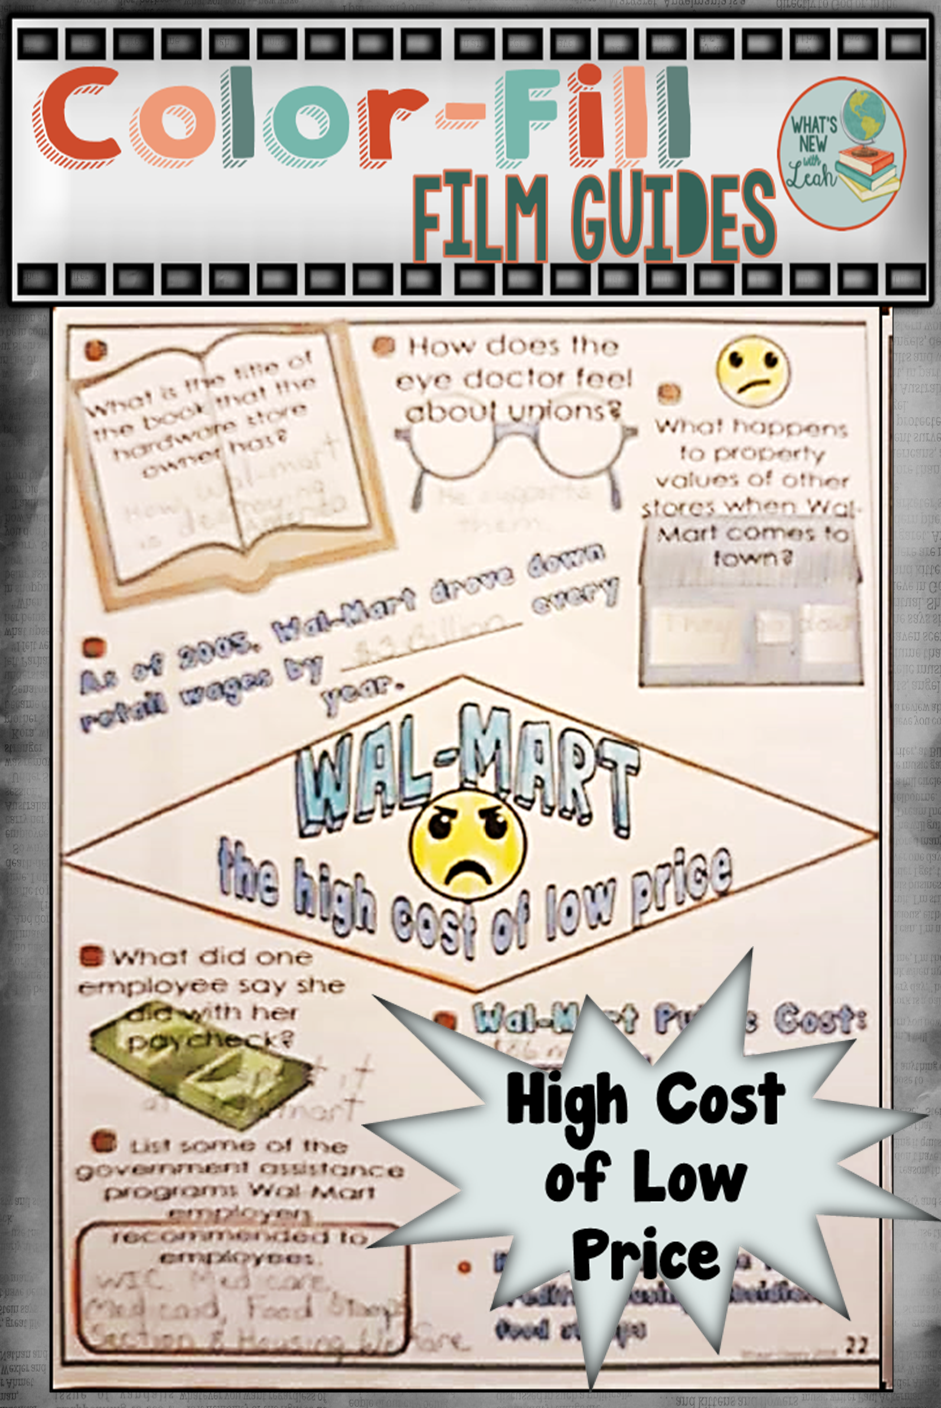 Walmart The High Cost Of Low Price Color Fill Film Guide Doodle Notes Doodle Notes School Notes I School [ 1408 x 941 Pixel ]